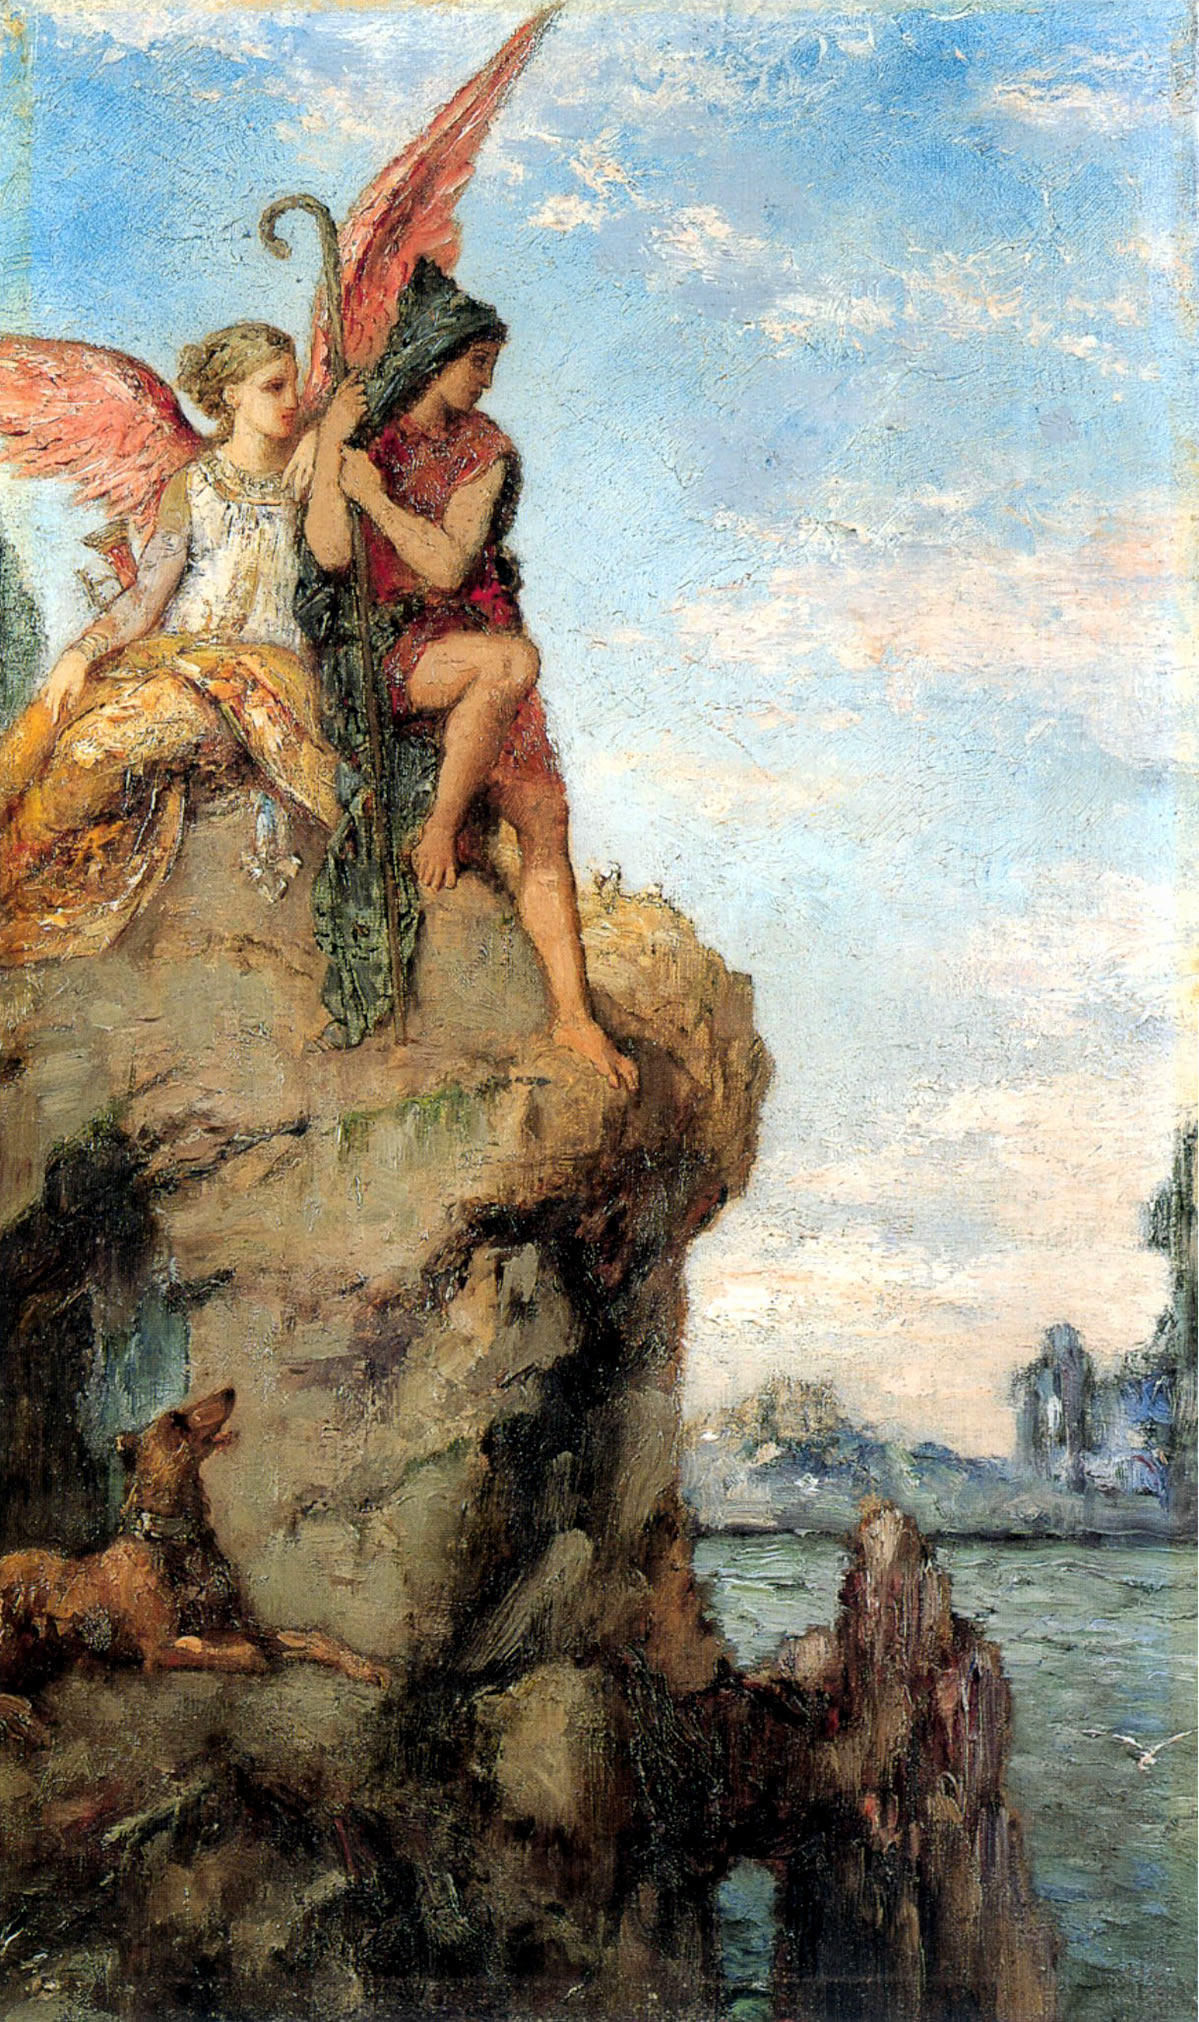 Gustave Moreau's Hesiod and the Muse